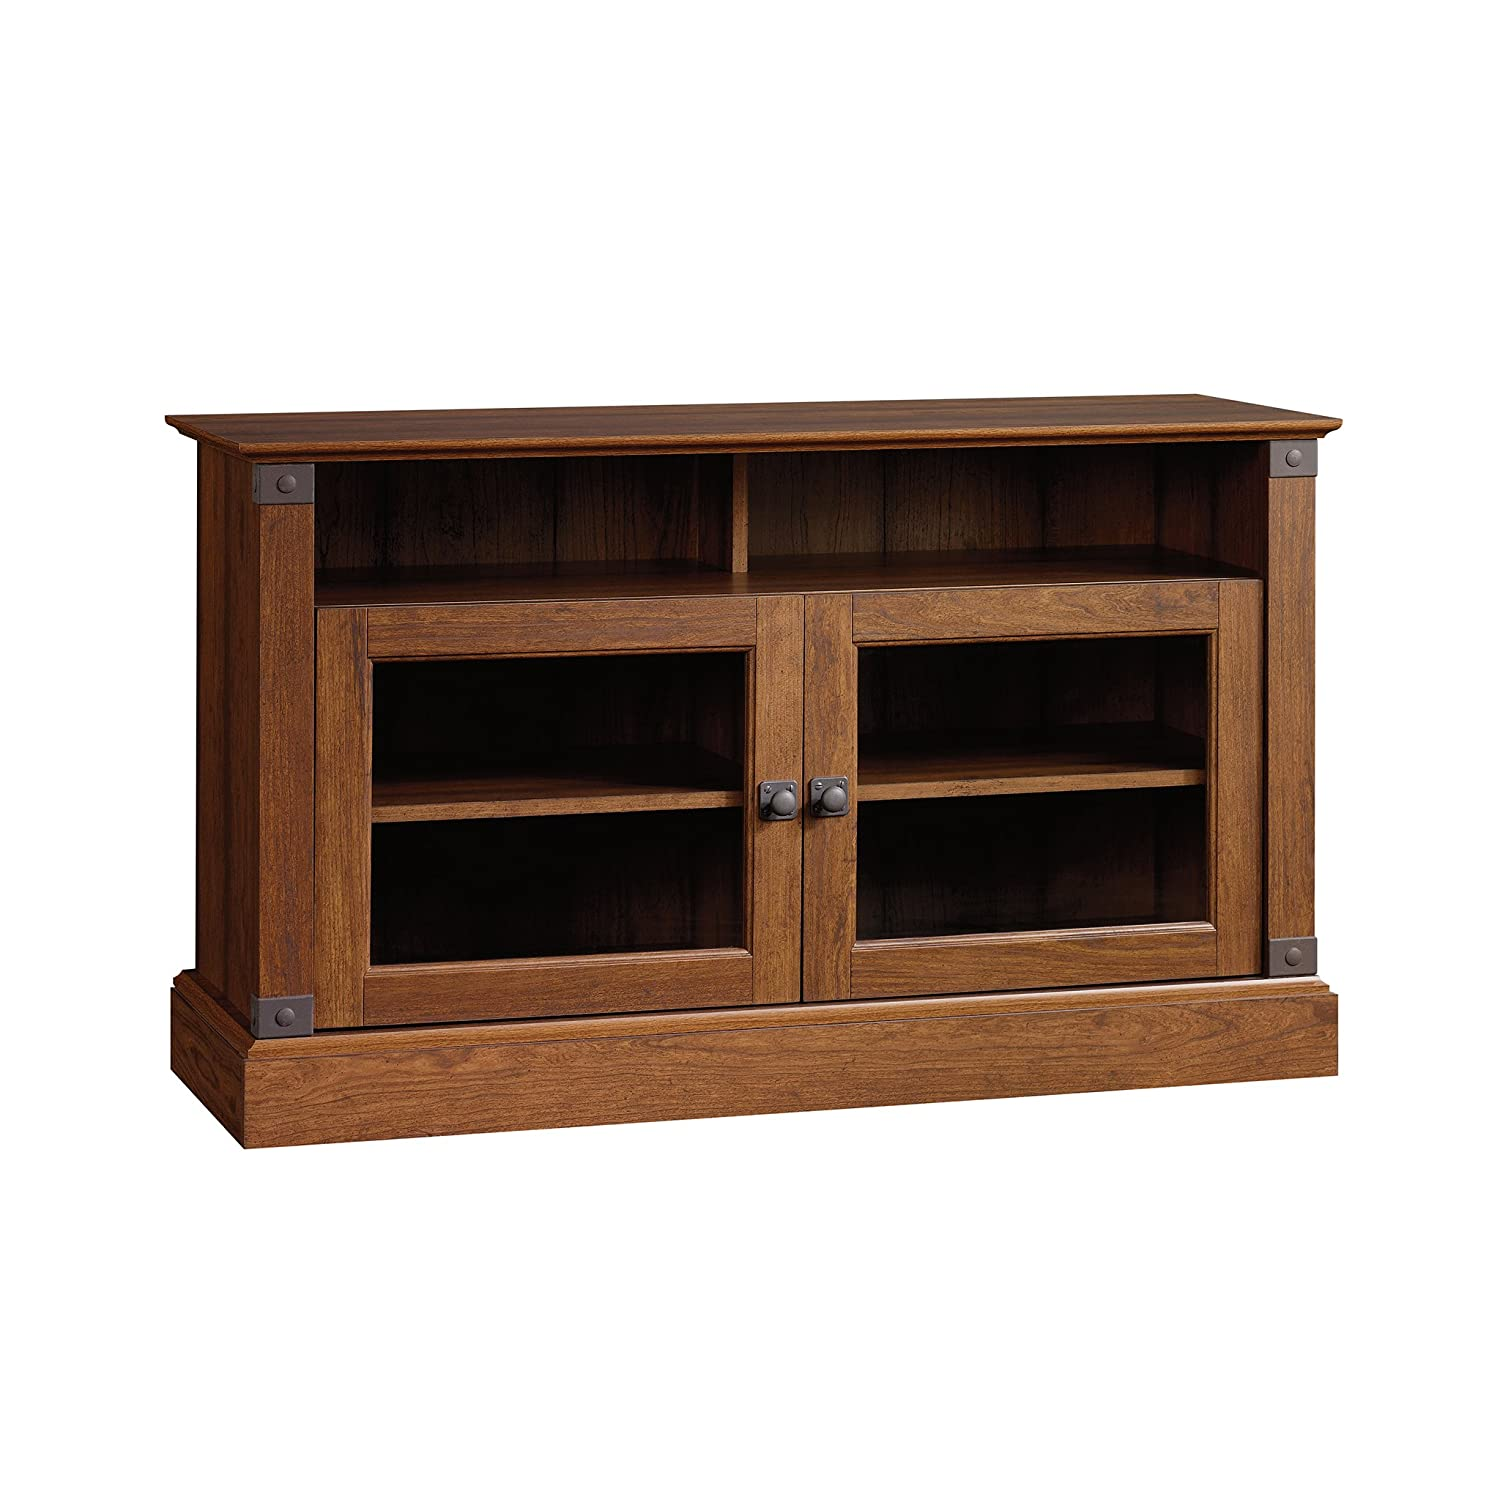 Sauder Carson Forge Panel Tv Stand, For TV s up to 47 , Washington Cherry finish